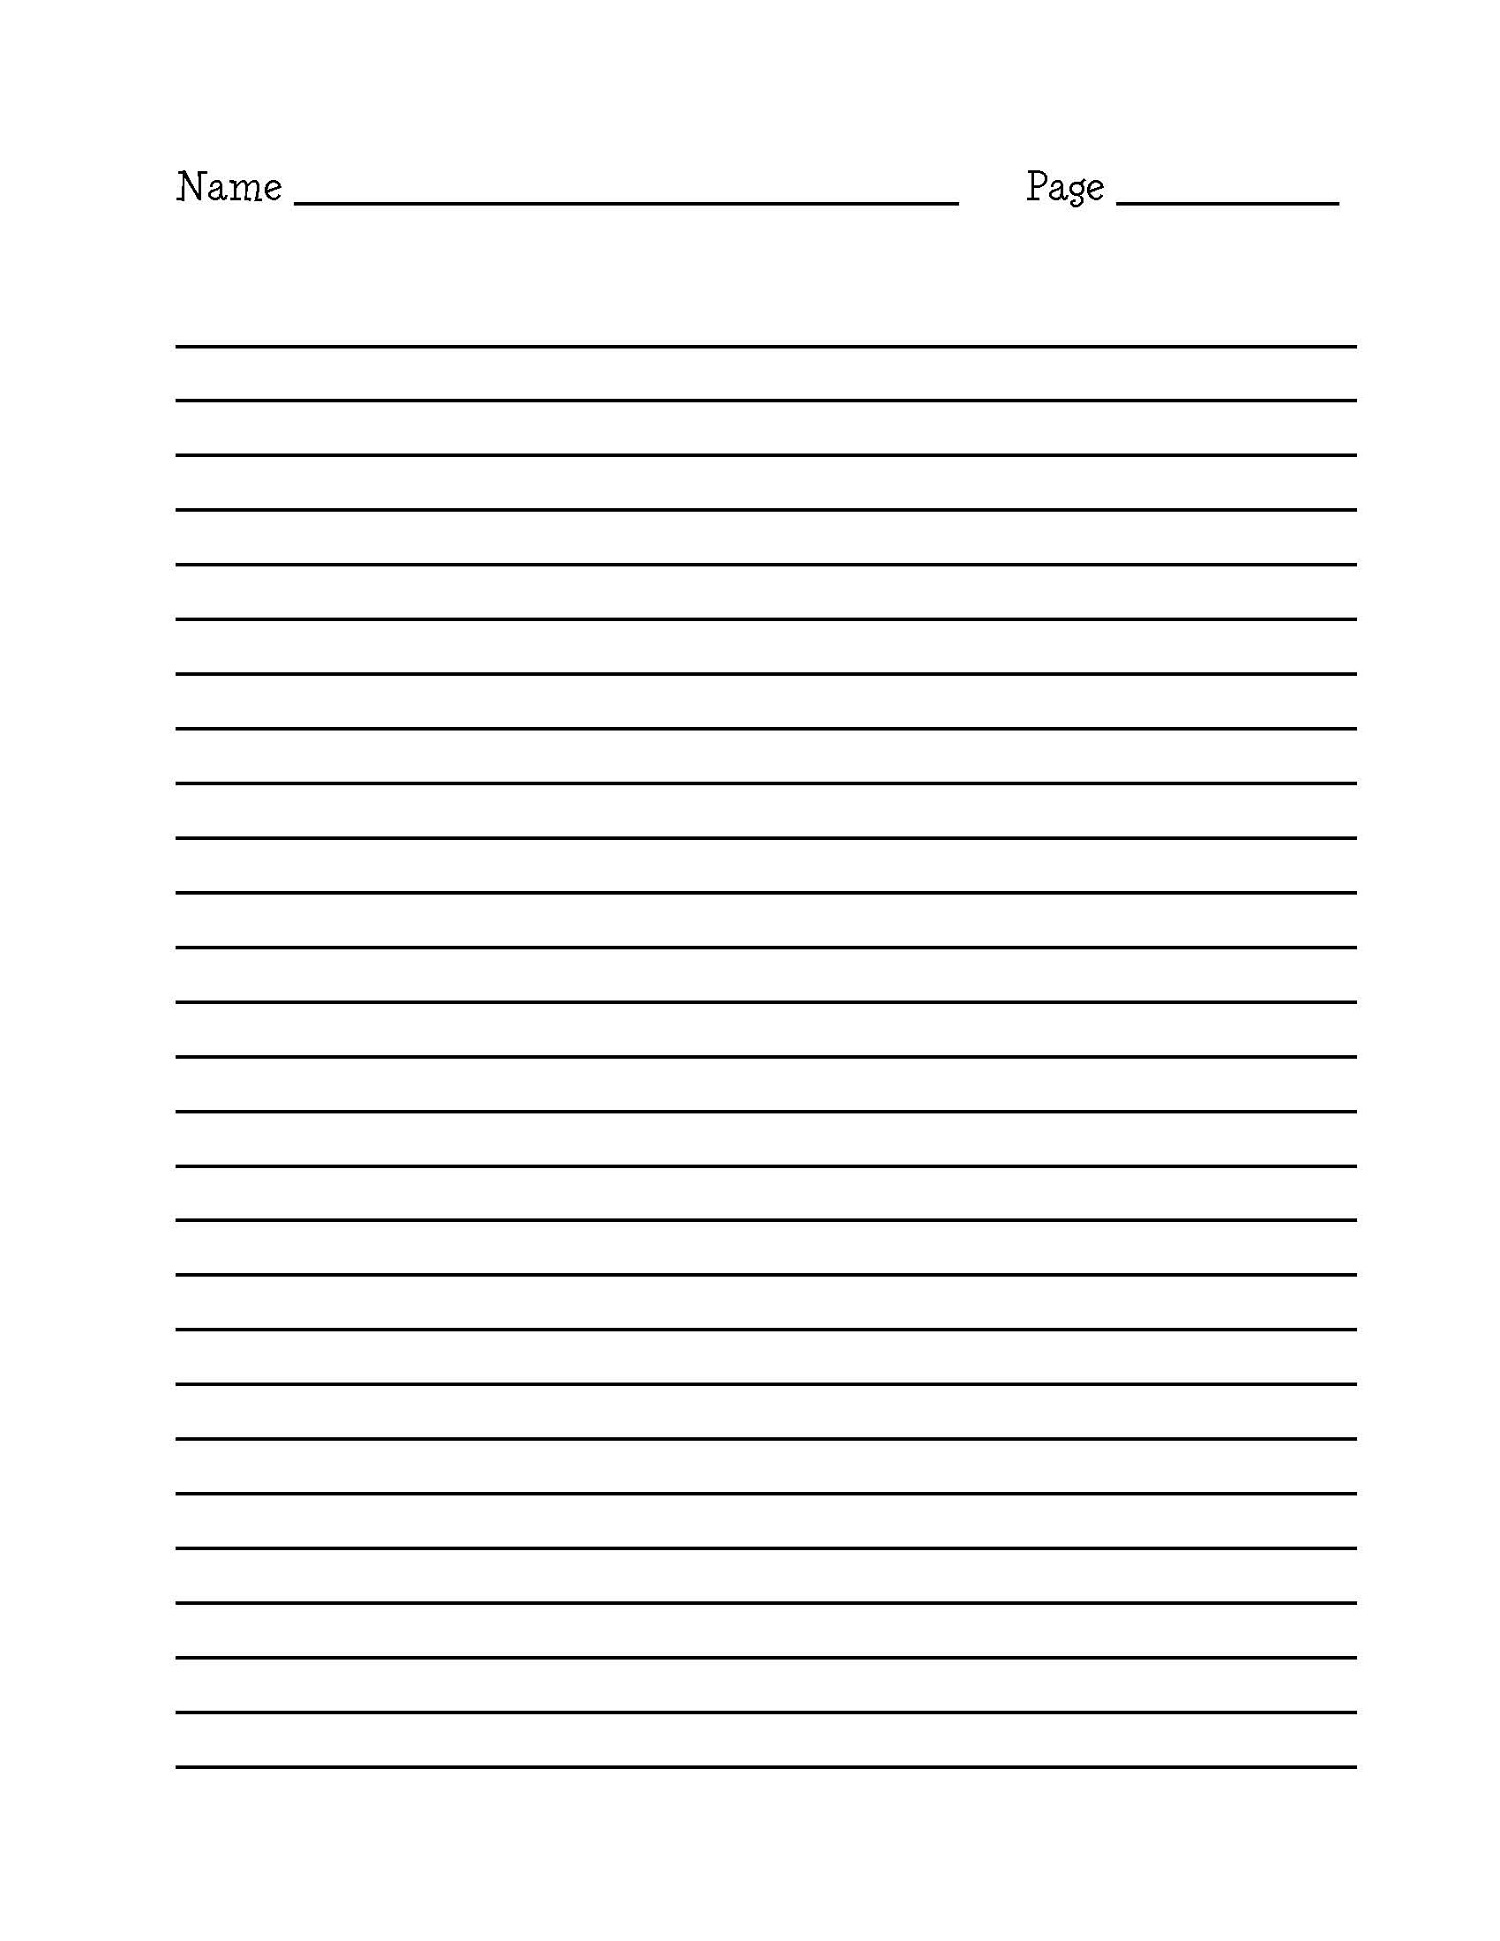 Printable Writing Paper With Border - Floss Papers - Elementary Lined Paper Printable Free